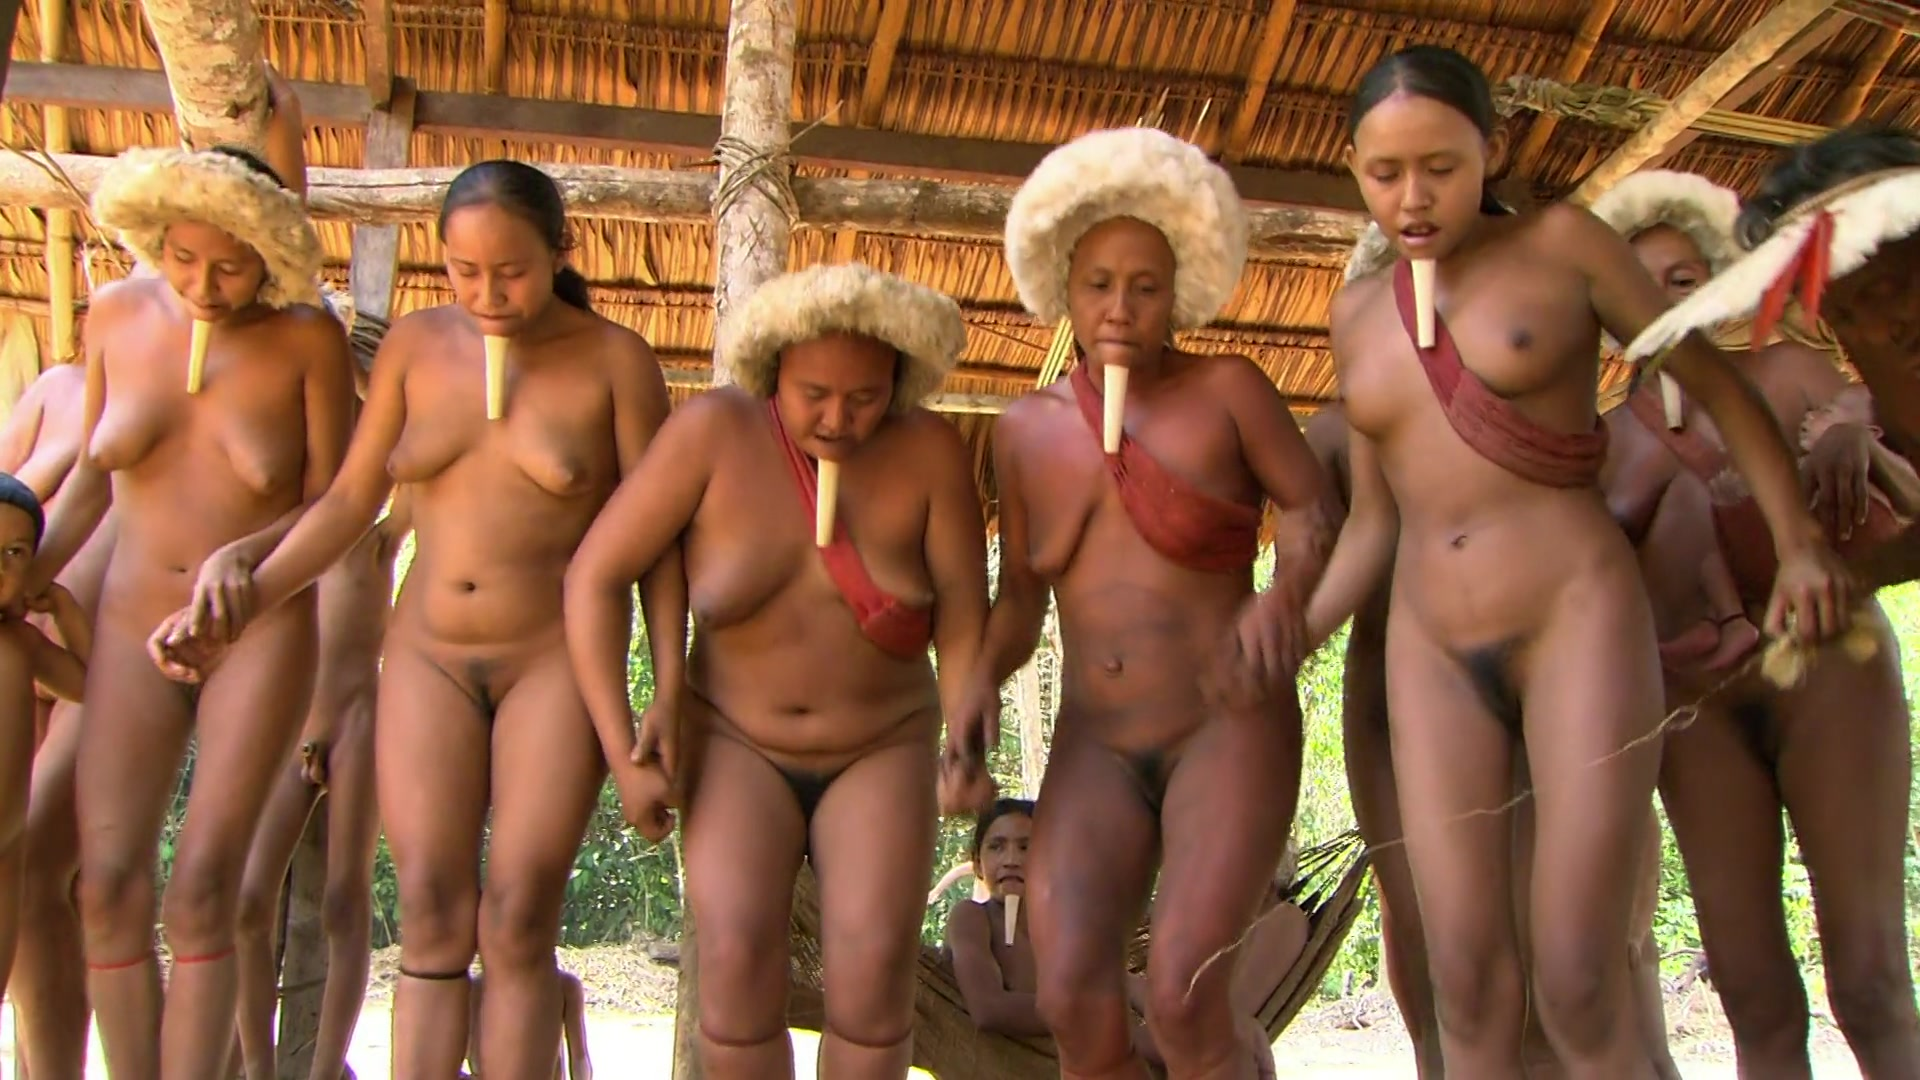 Nude tribesmen exposed photo